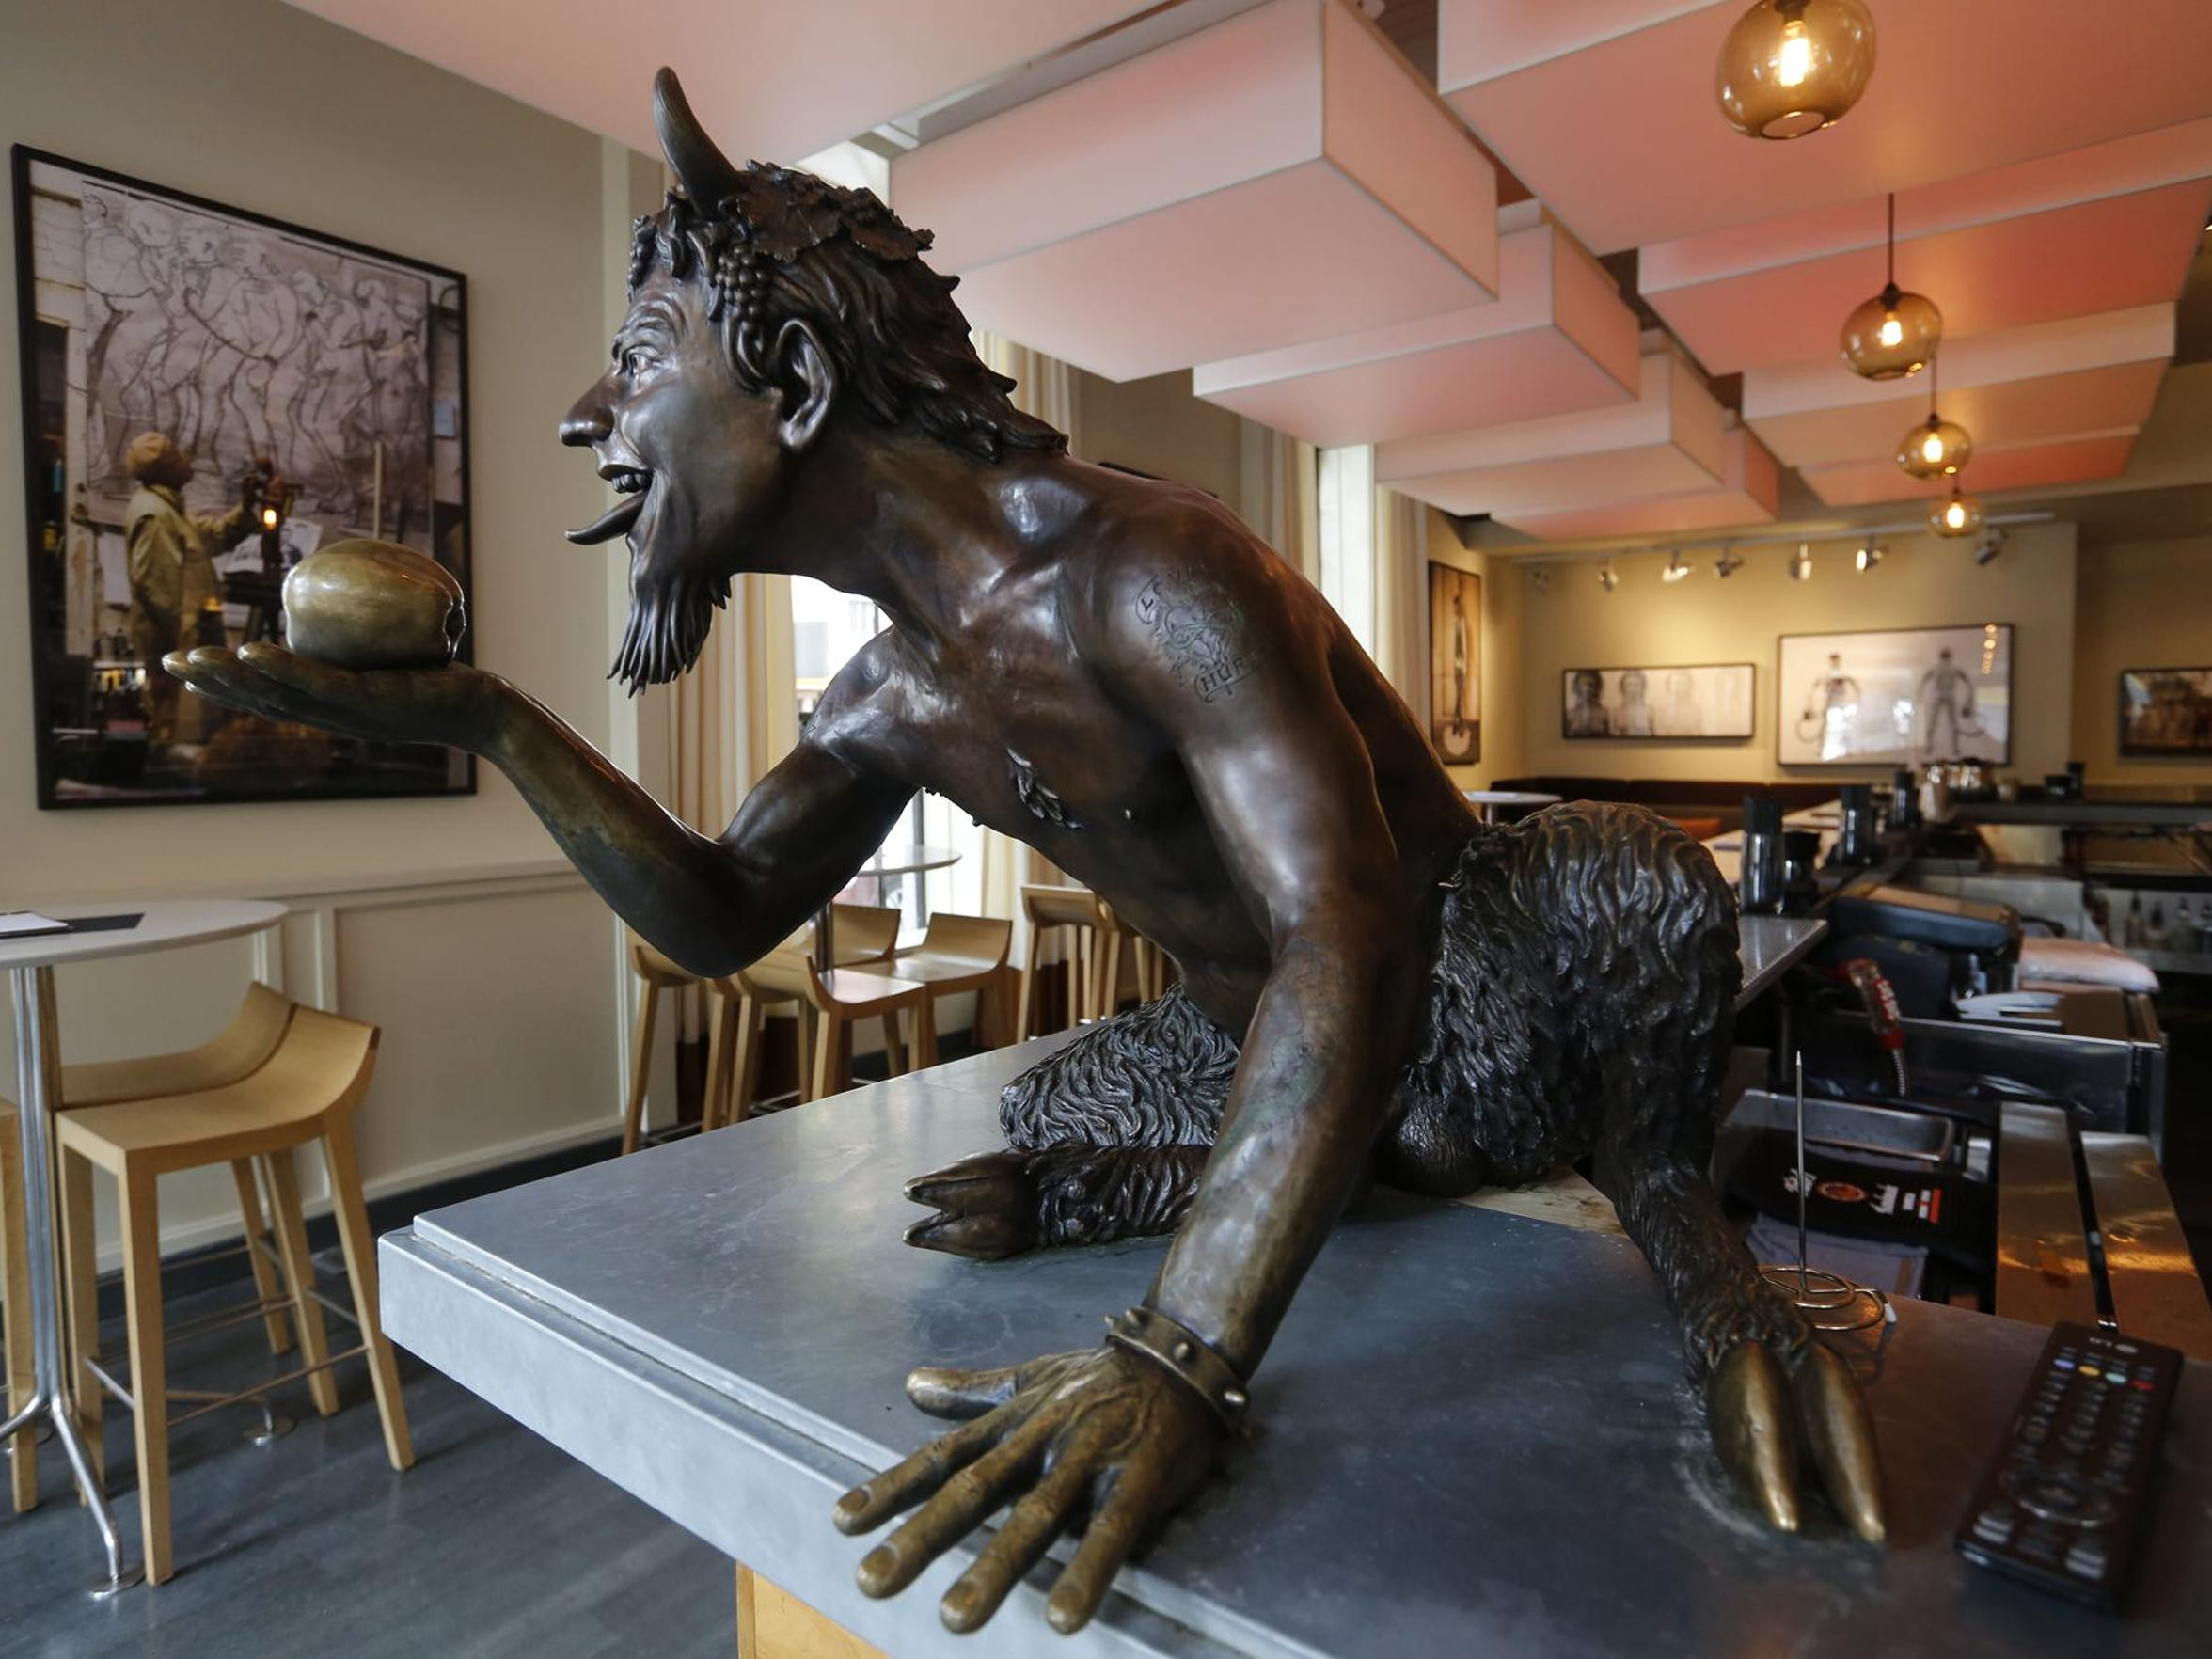 A bronze sculpture at the Proof on Main restaurant